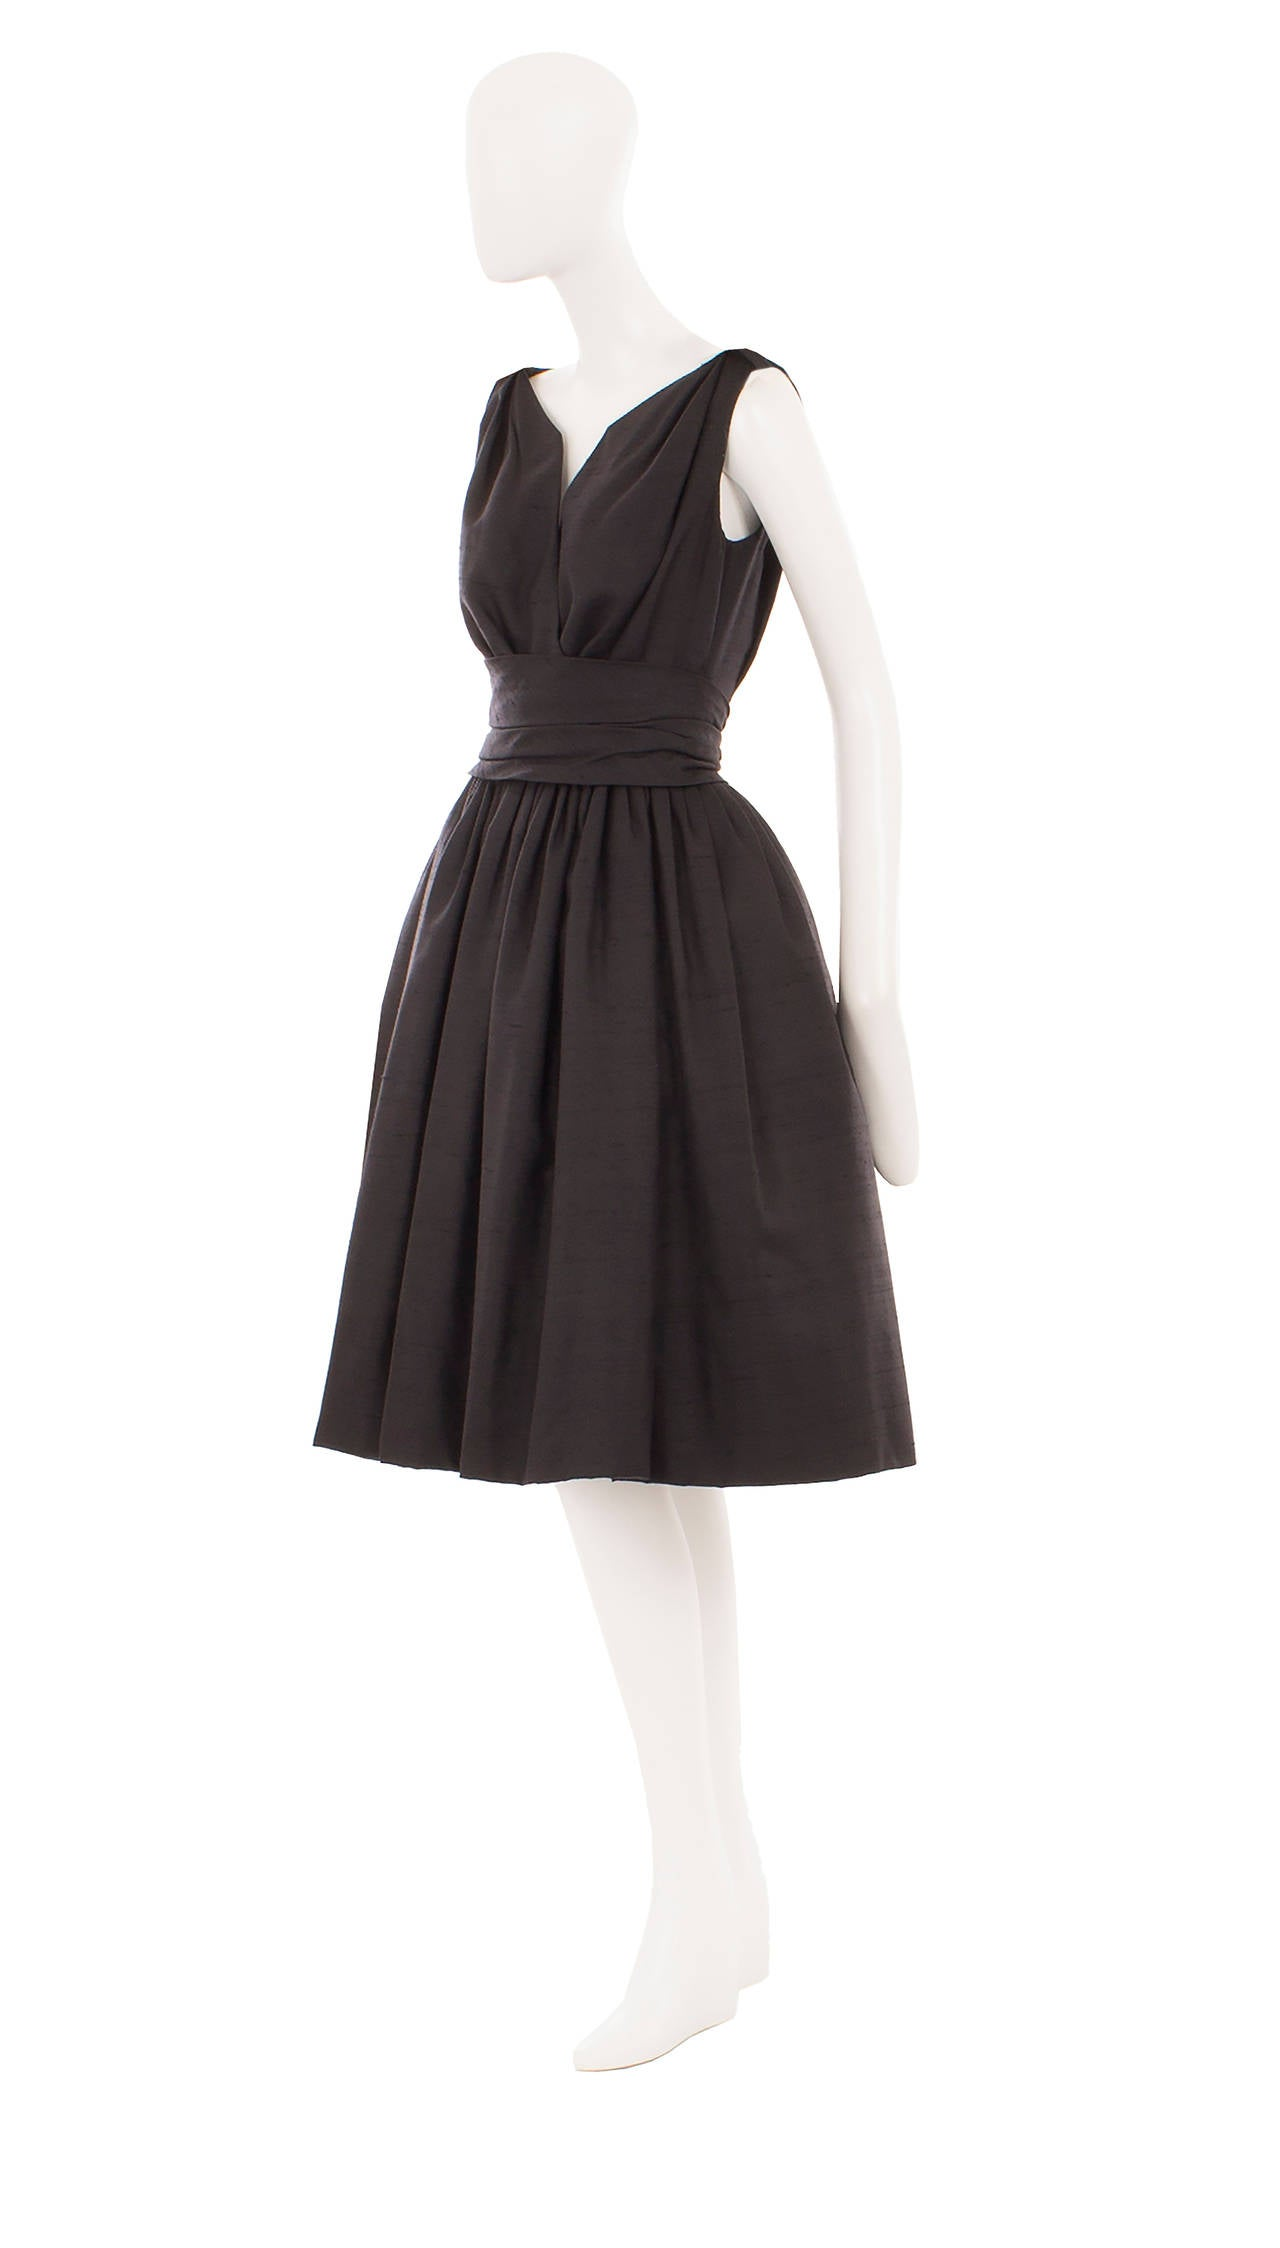 This classic Christian Dior little black dress is perfect for cocktail parties and special events. Constructed in soft silk Dupion, the dress features a plunging neckline and bow detail on the shoulders. A pleated waistband cinches in and